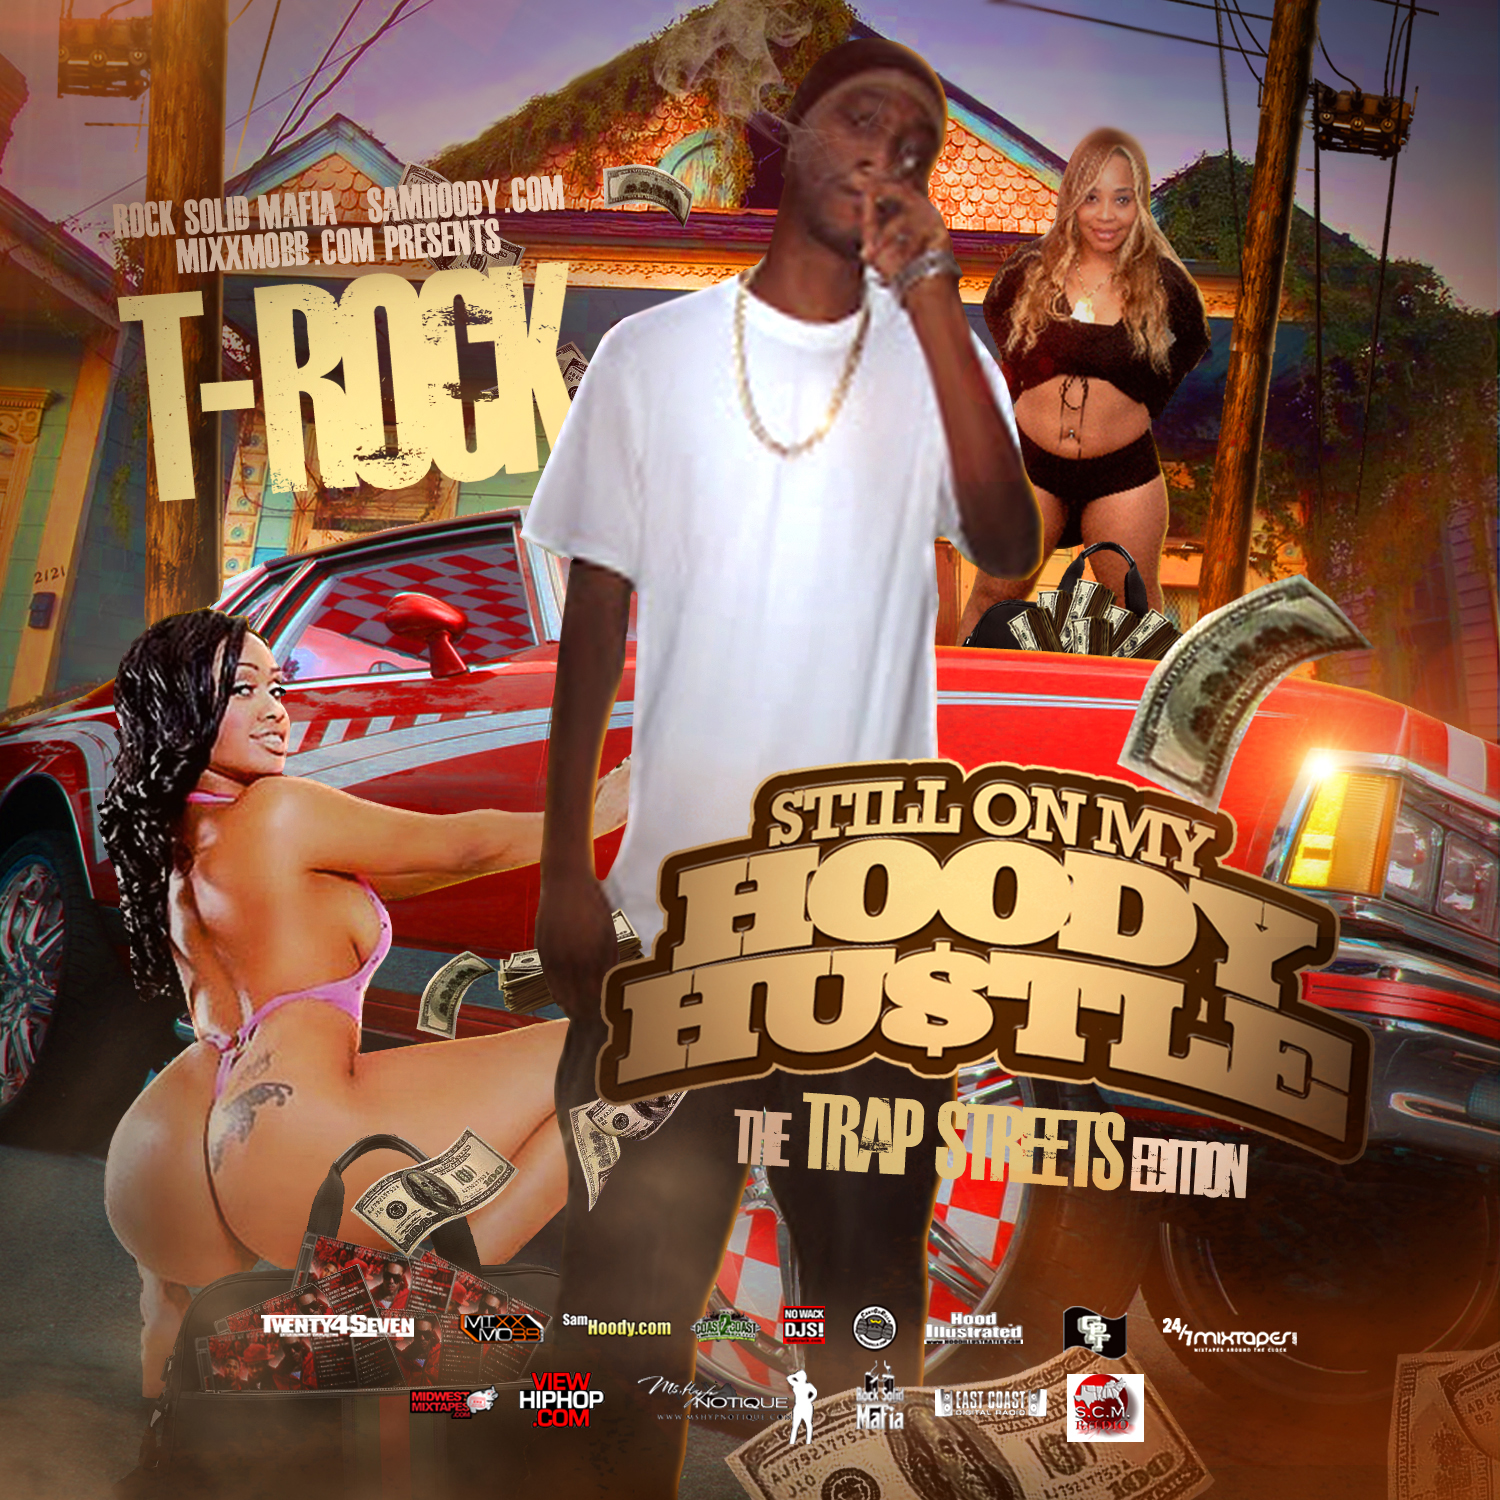 T-Rock - Still On My Hoody Hustle (The Trap Streets Edition)